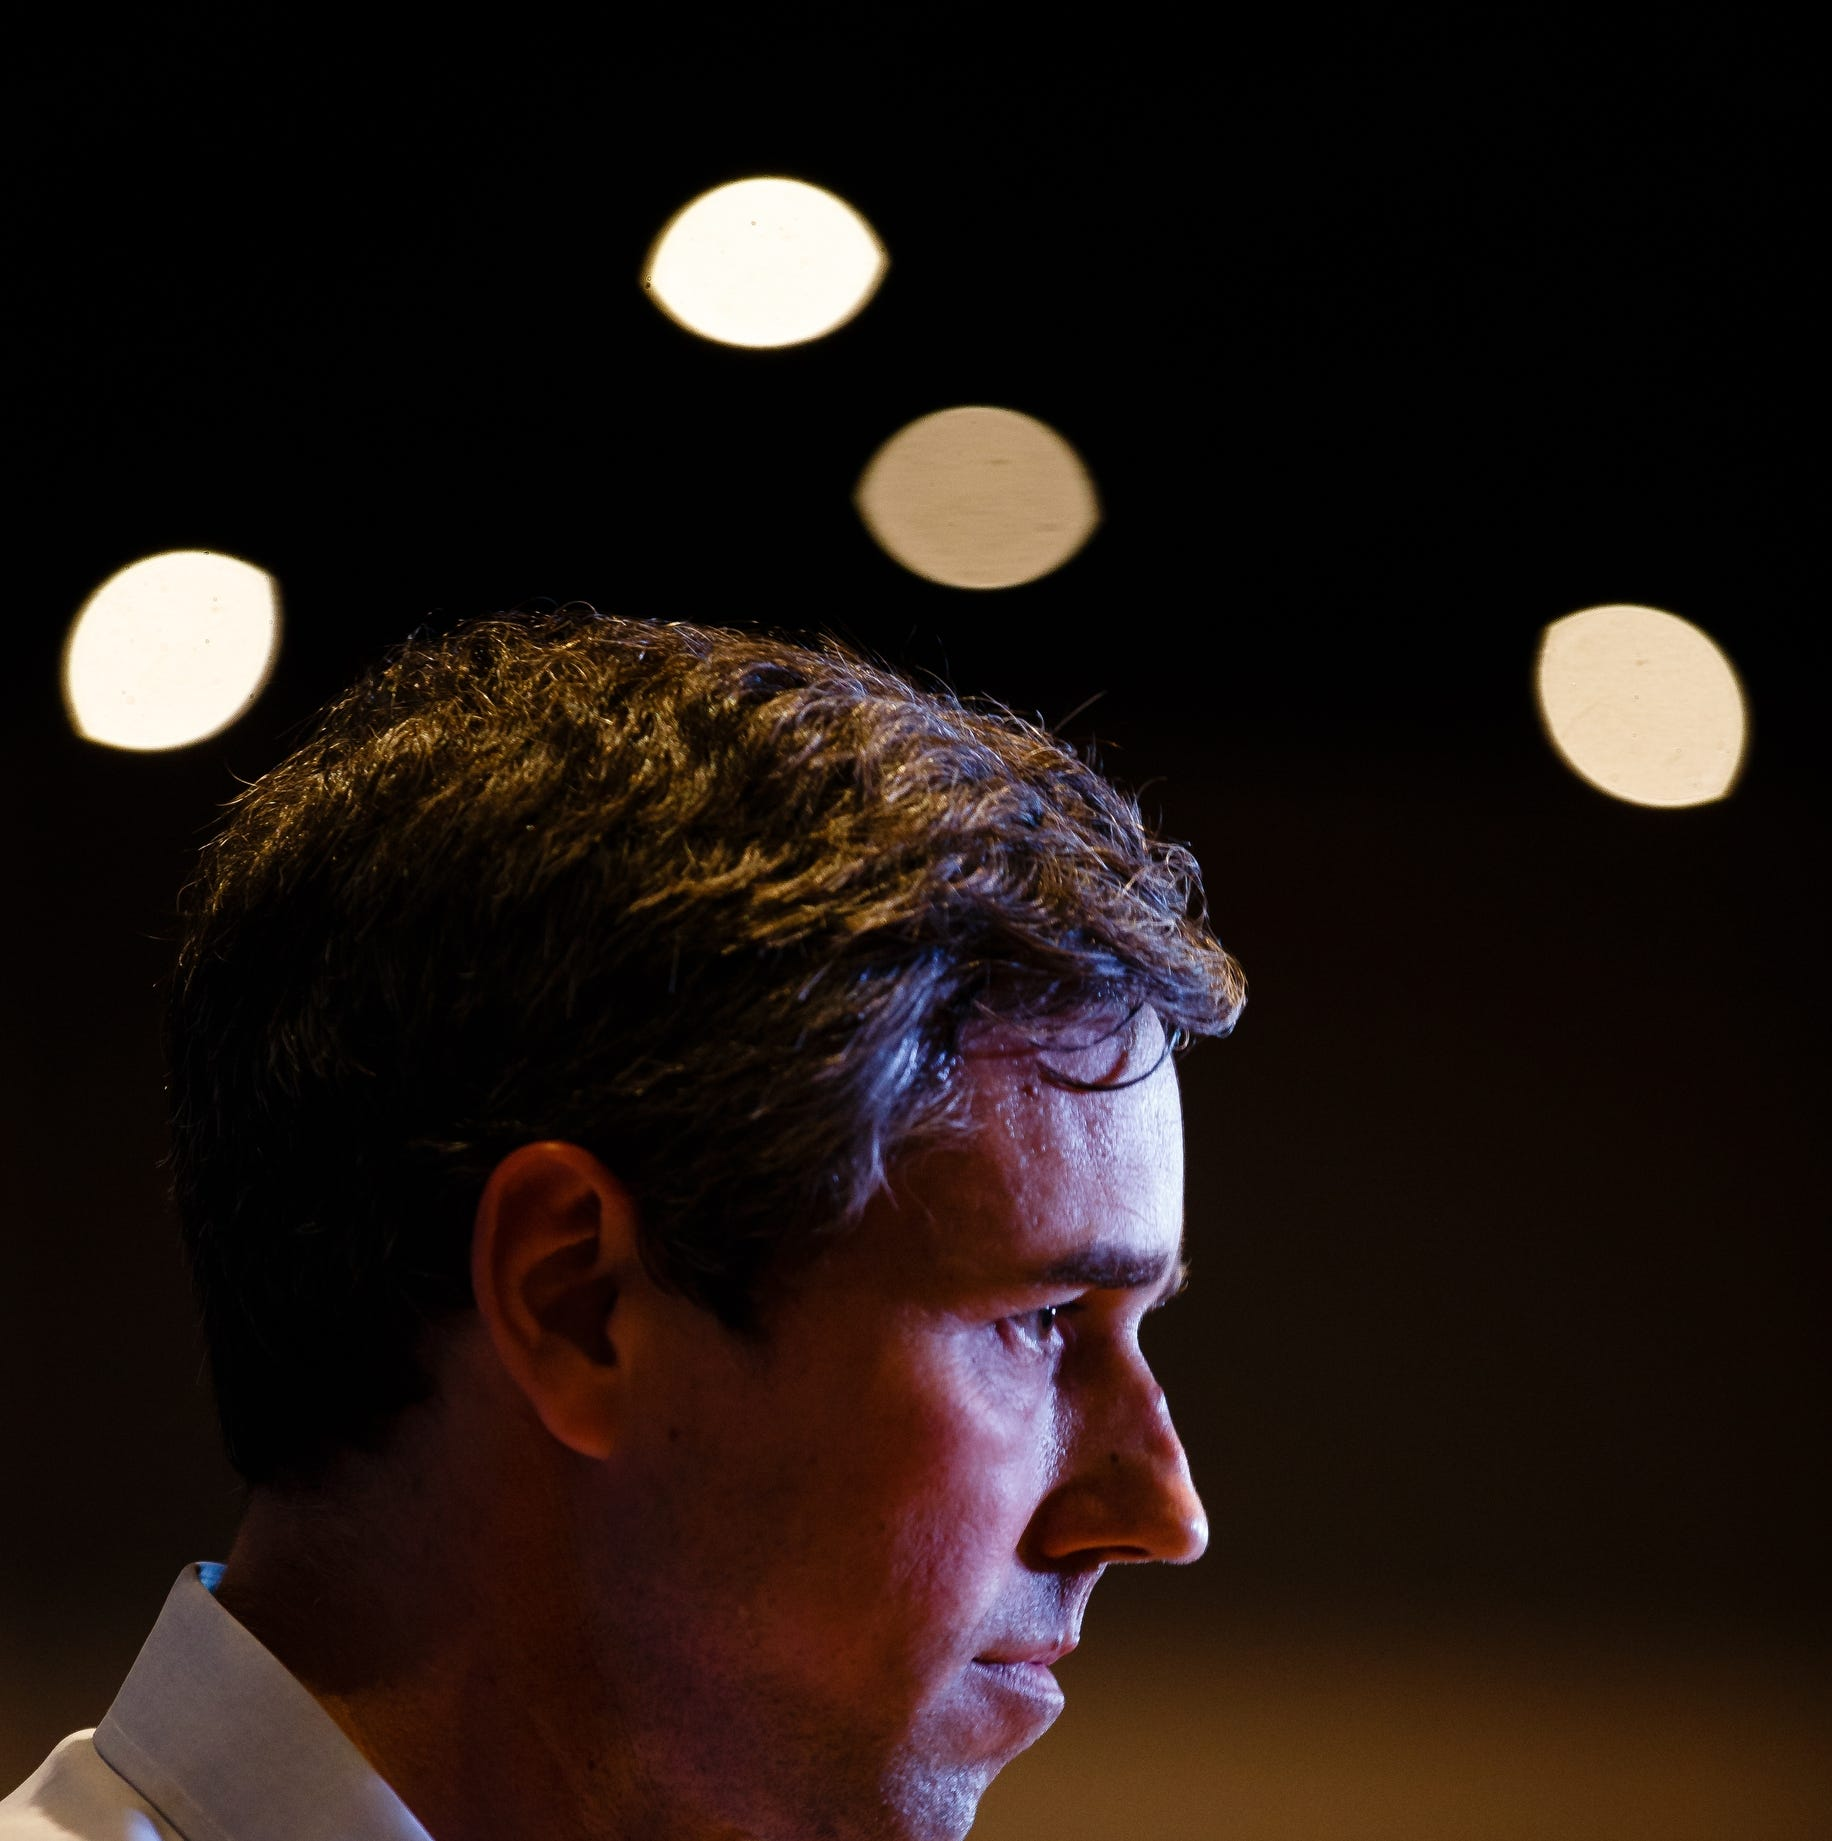 Beto O'Rourke amends climate change policy proposal based on talks with Iowans